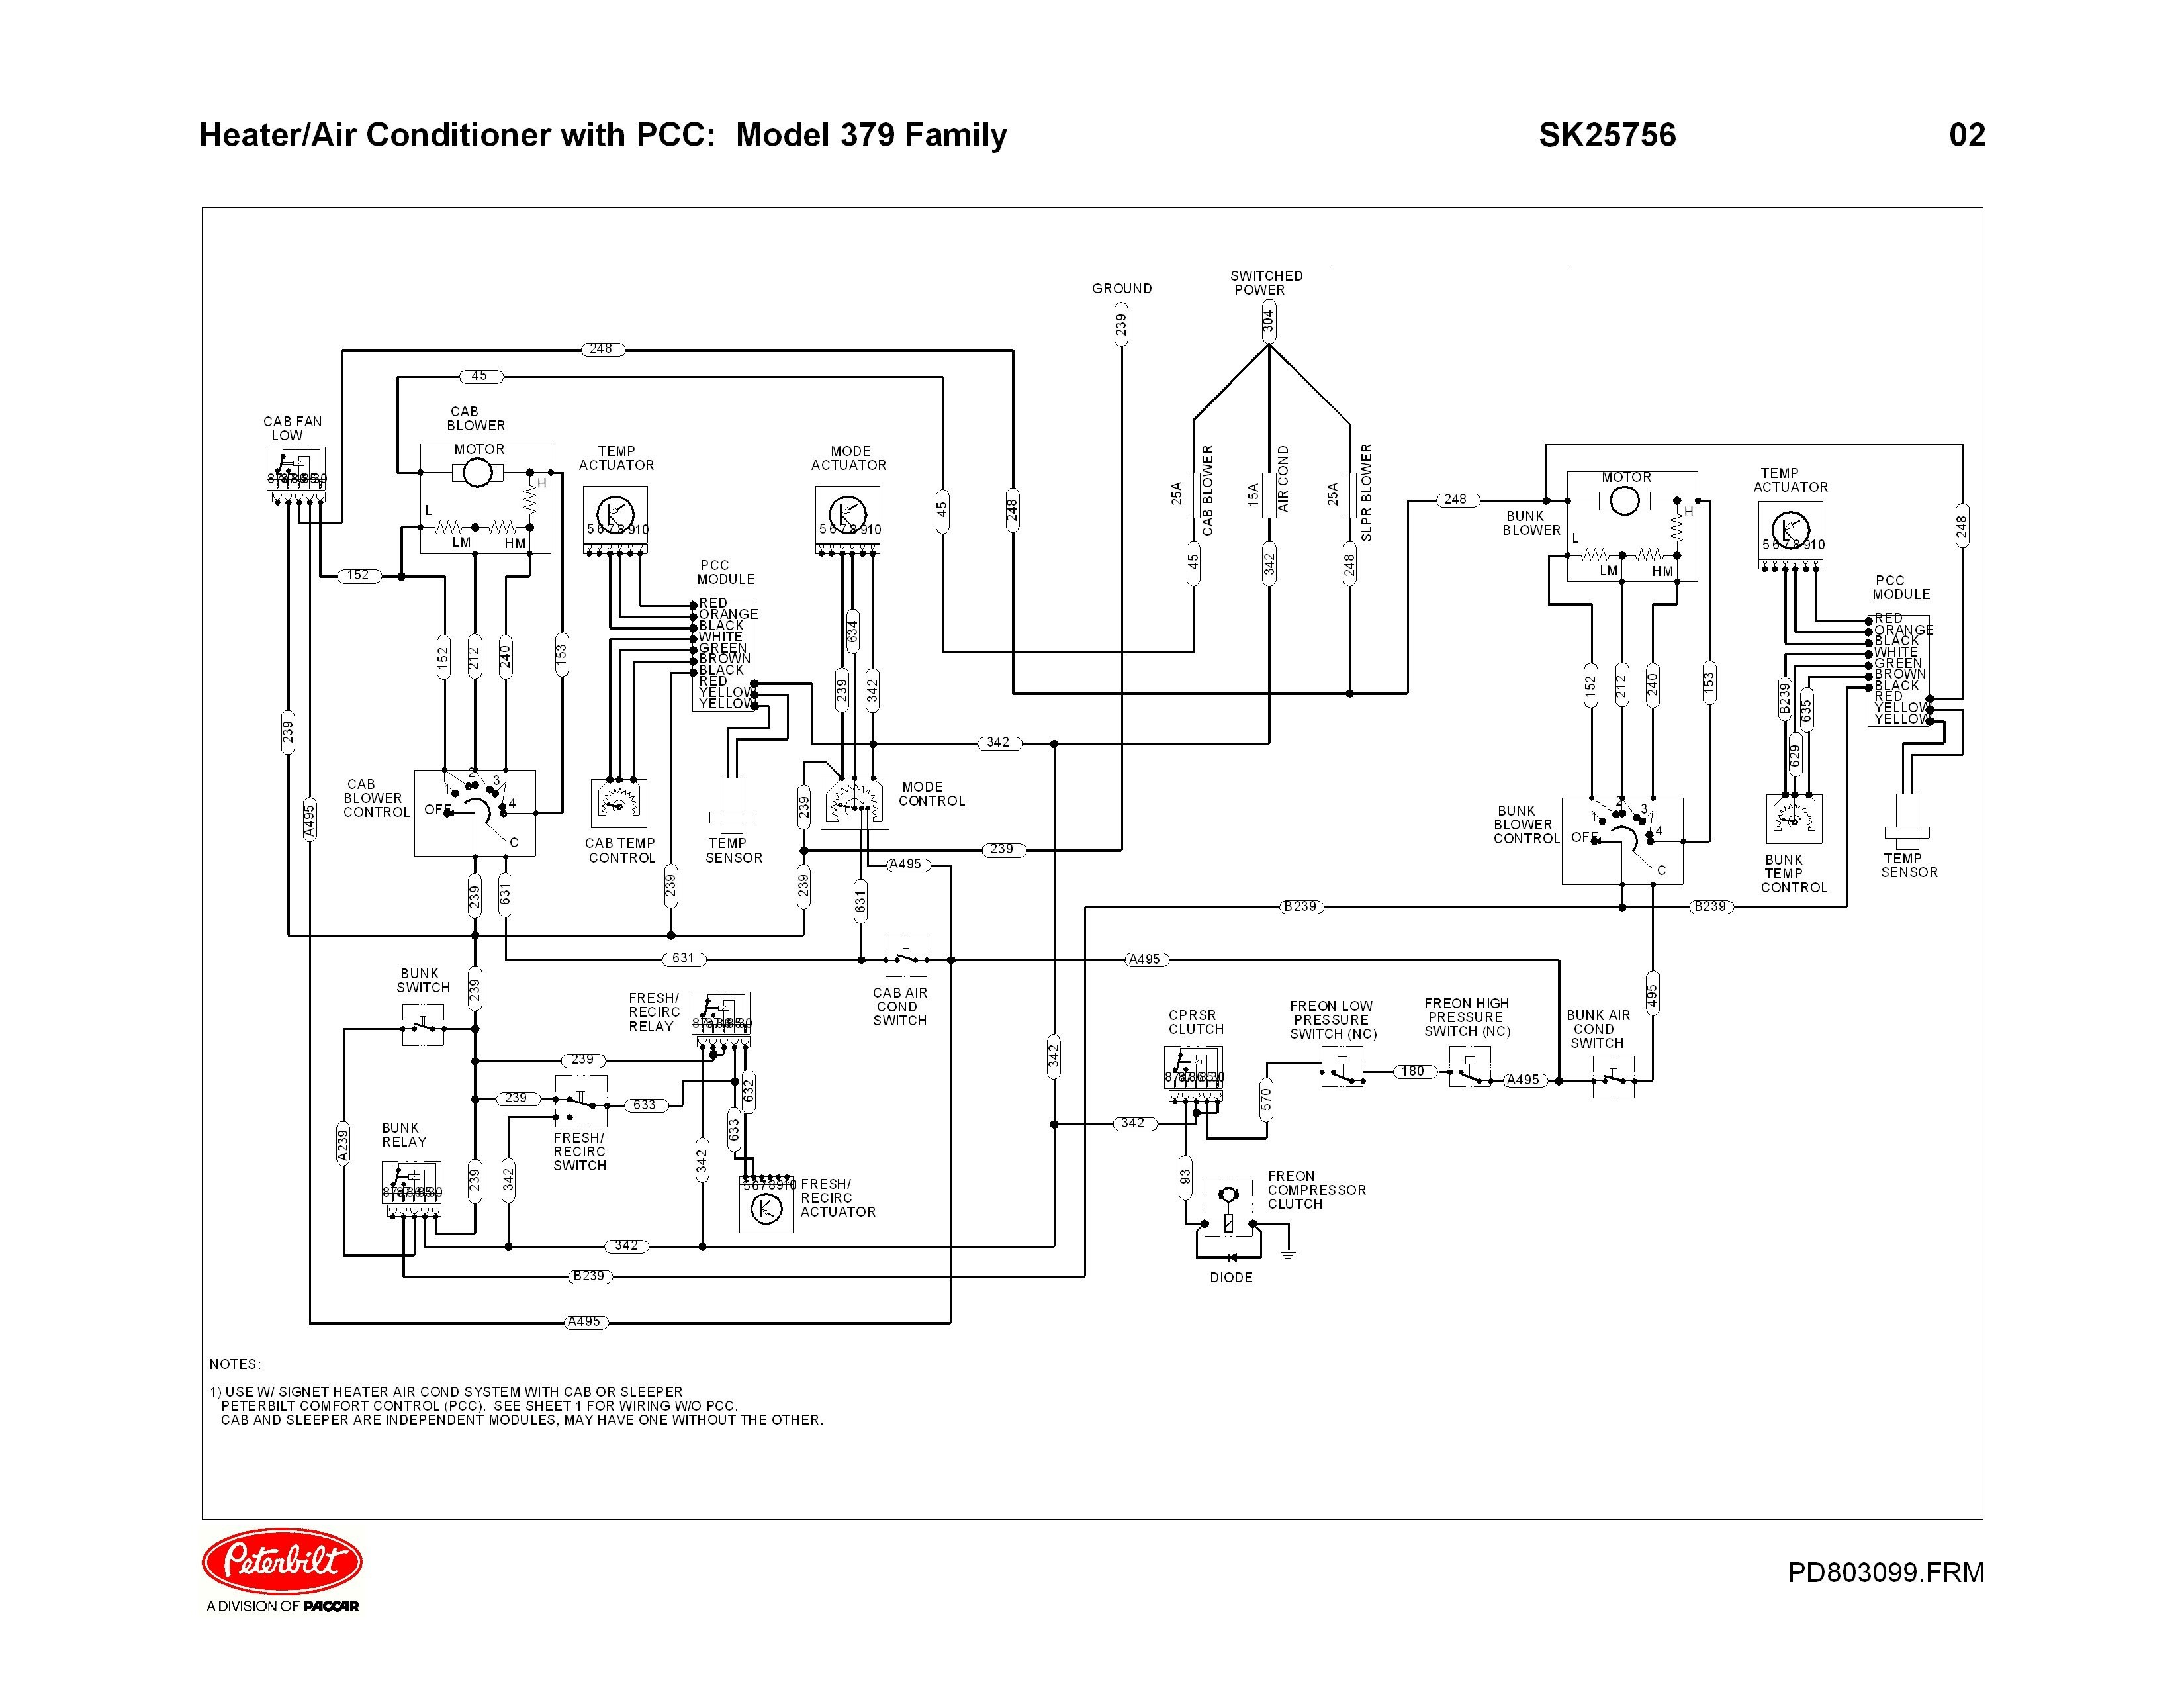 XN_2800] Peterbilt Truck Wiring Diagrams Free Image Wiring Diagram Engine  Wiring DiagramRally Peted Caci Isop Chim Simij Cular Lectu Perm Ophen Atrix Unde Vira  Mohammedshrine Librar Wiring 101